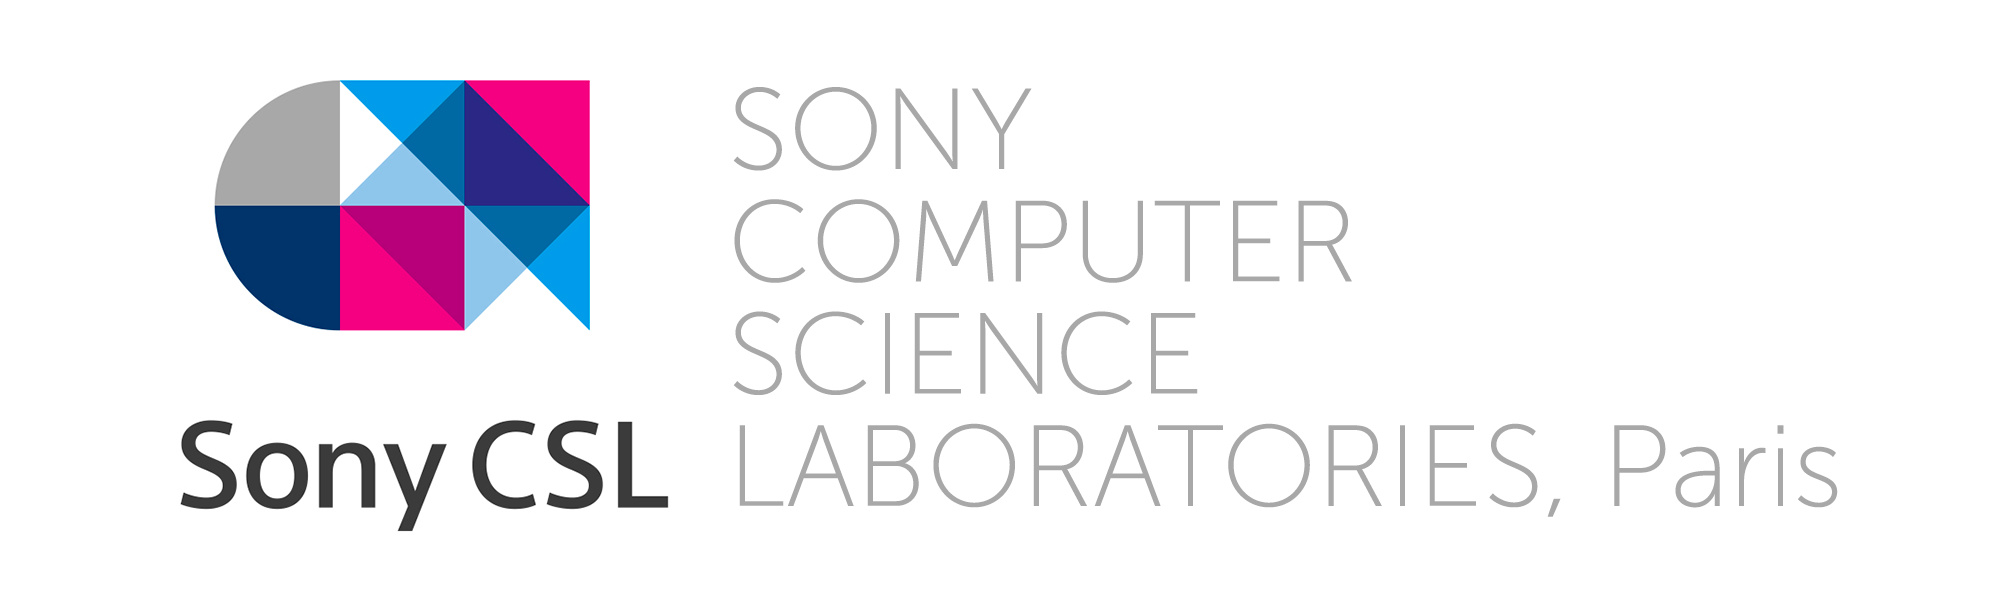 Sony Computer Science Laboratories, Paris